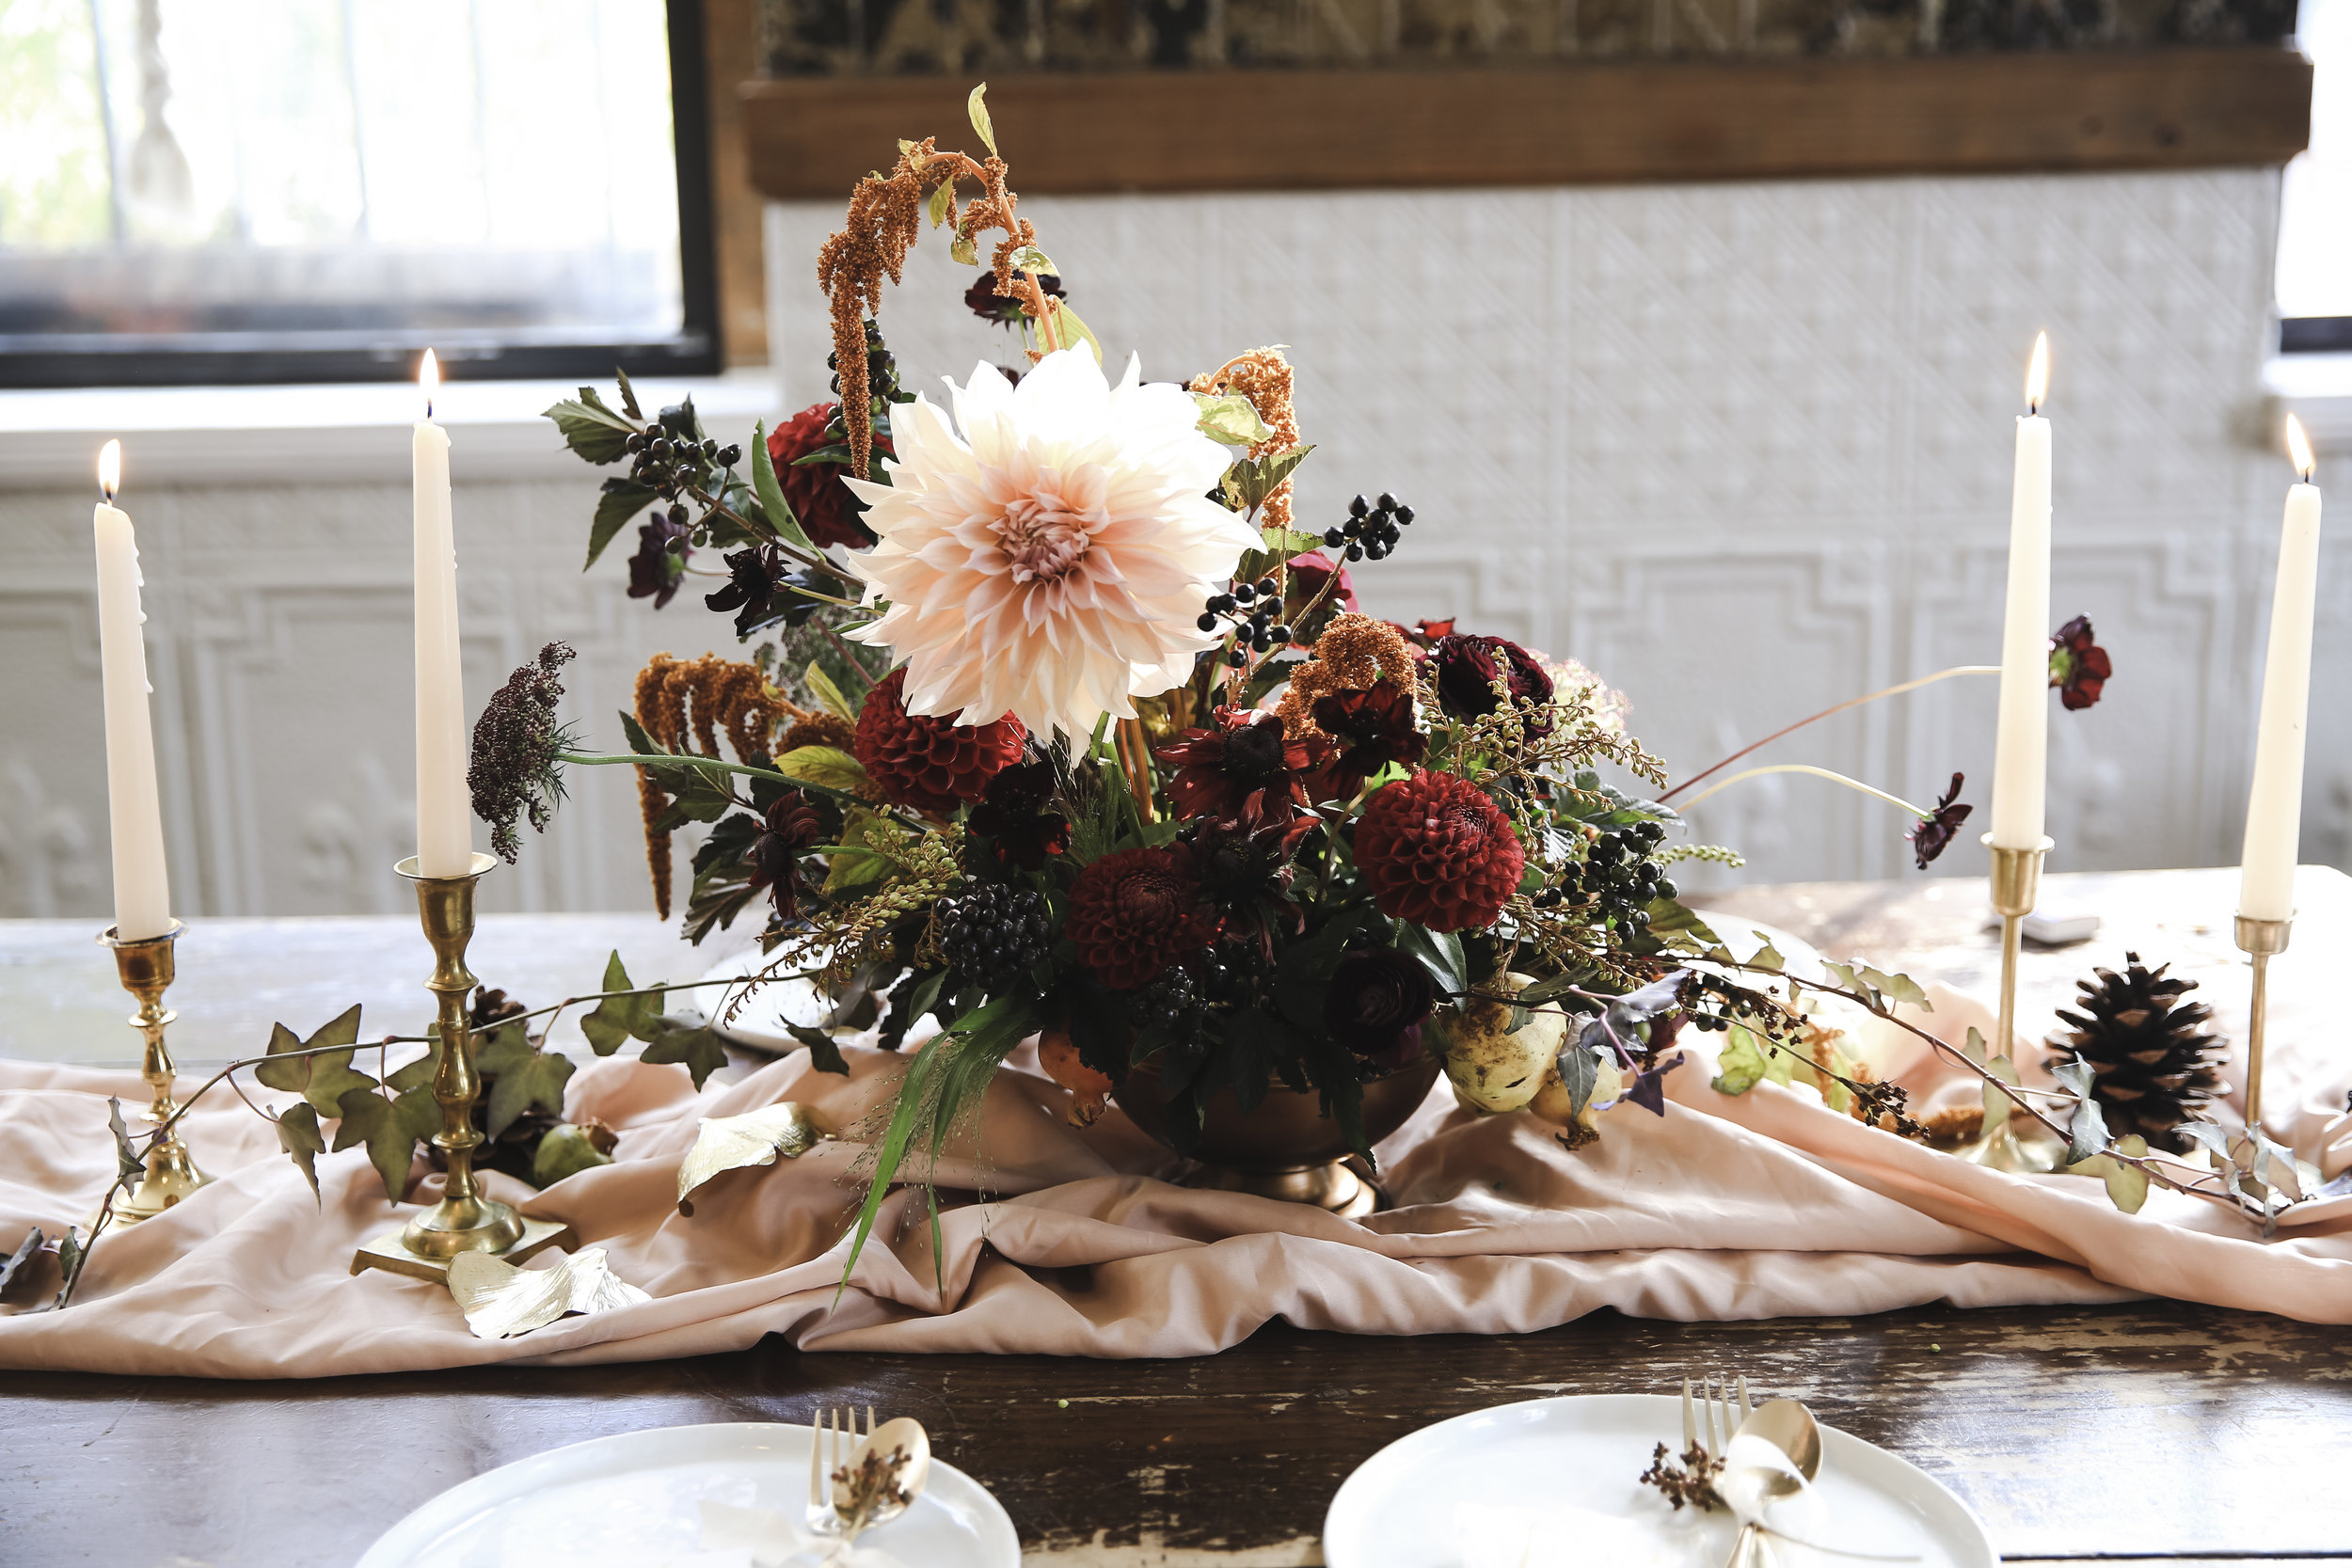 RachelSunae-CandaceM-RosewoodFloralCo-Thanksgiving-9.jpg